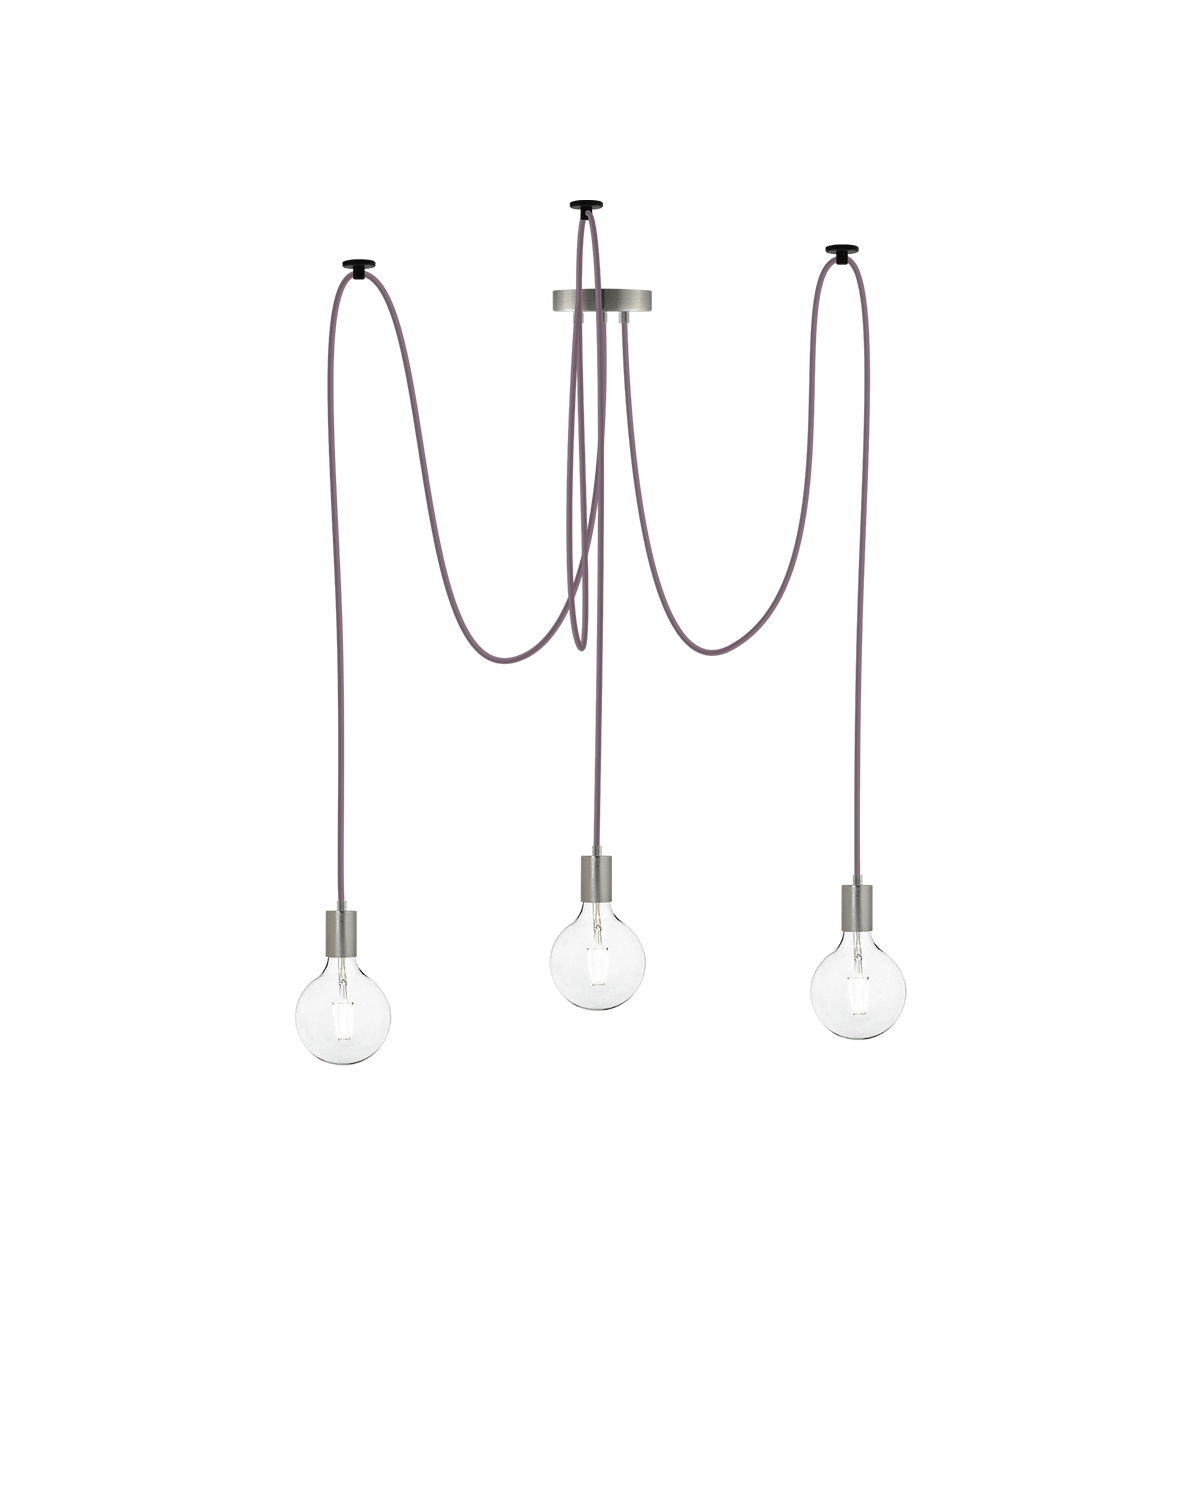 Swag Chandelier: Mauve and Nickel Hangout Lighting 3 Swag